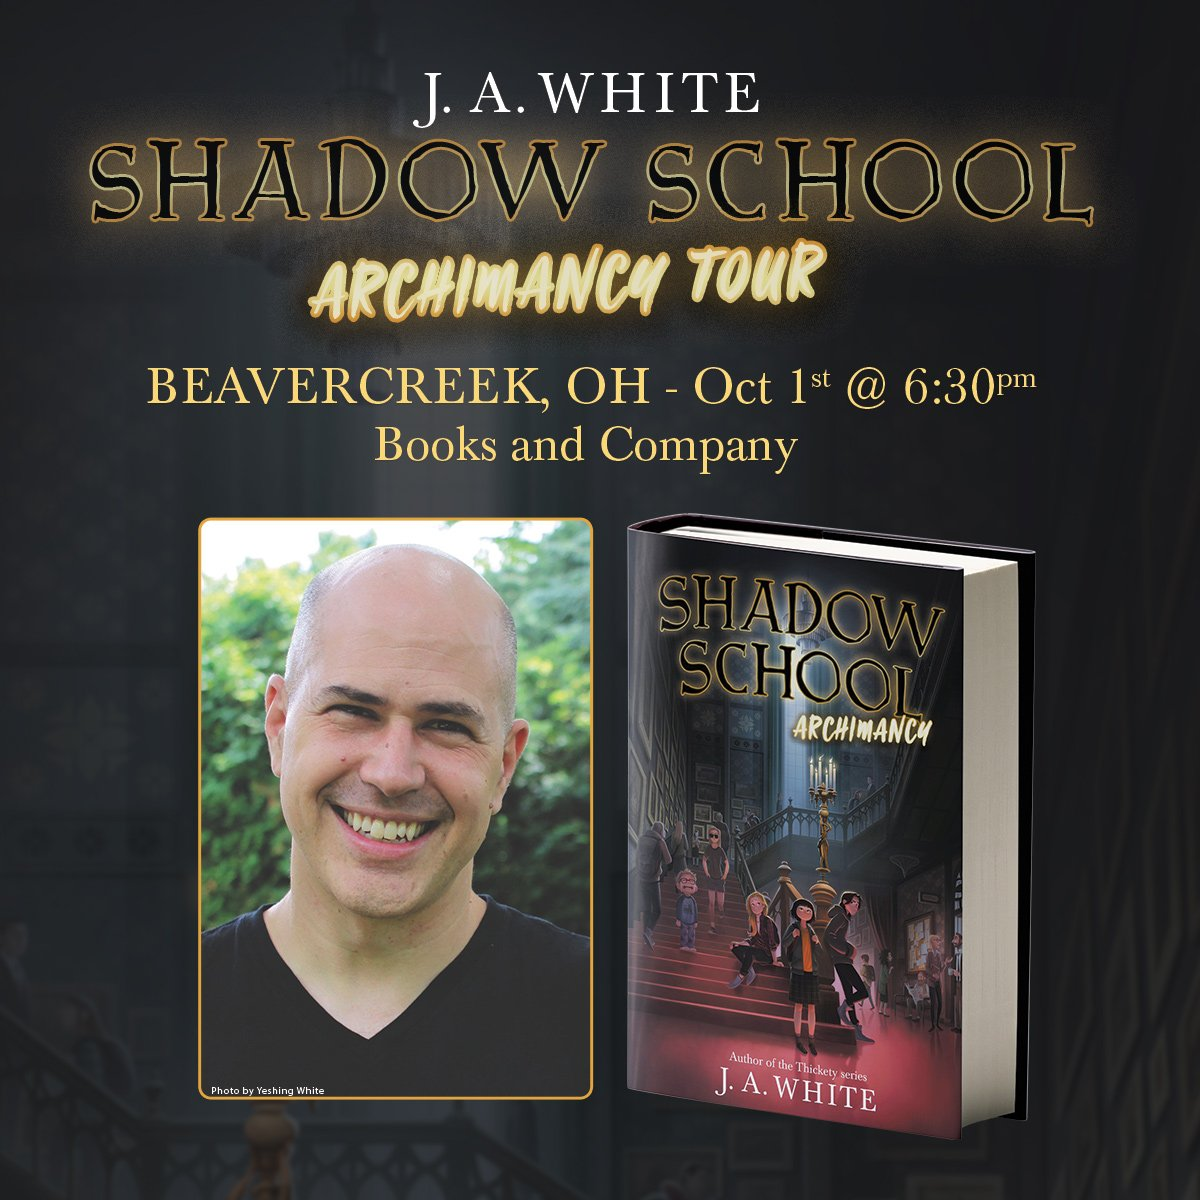 Get ready, #Beavercreek readers! SHADOW SCHOOL author @jawhitebooks is heading to Books & Co. at @The_Greene on 10/1 to launch his new series, and you wont want to miss it: ow.ly/myvK50wihjh